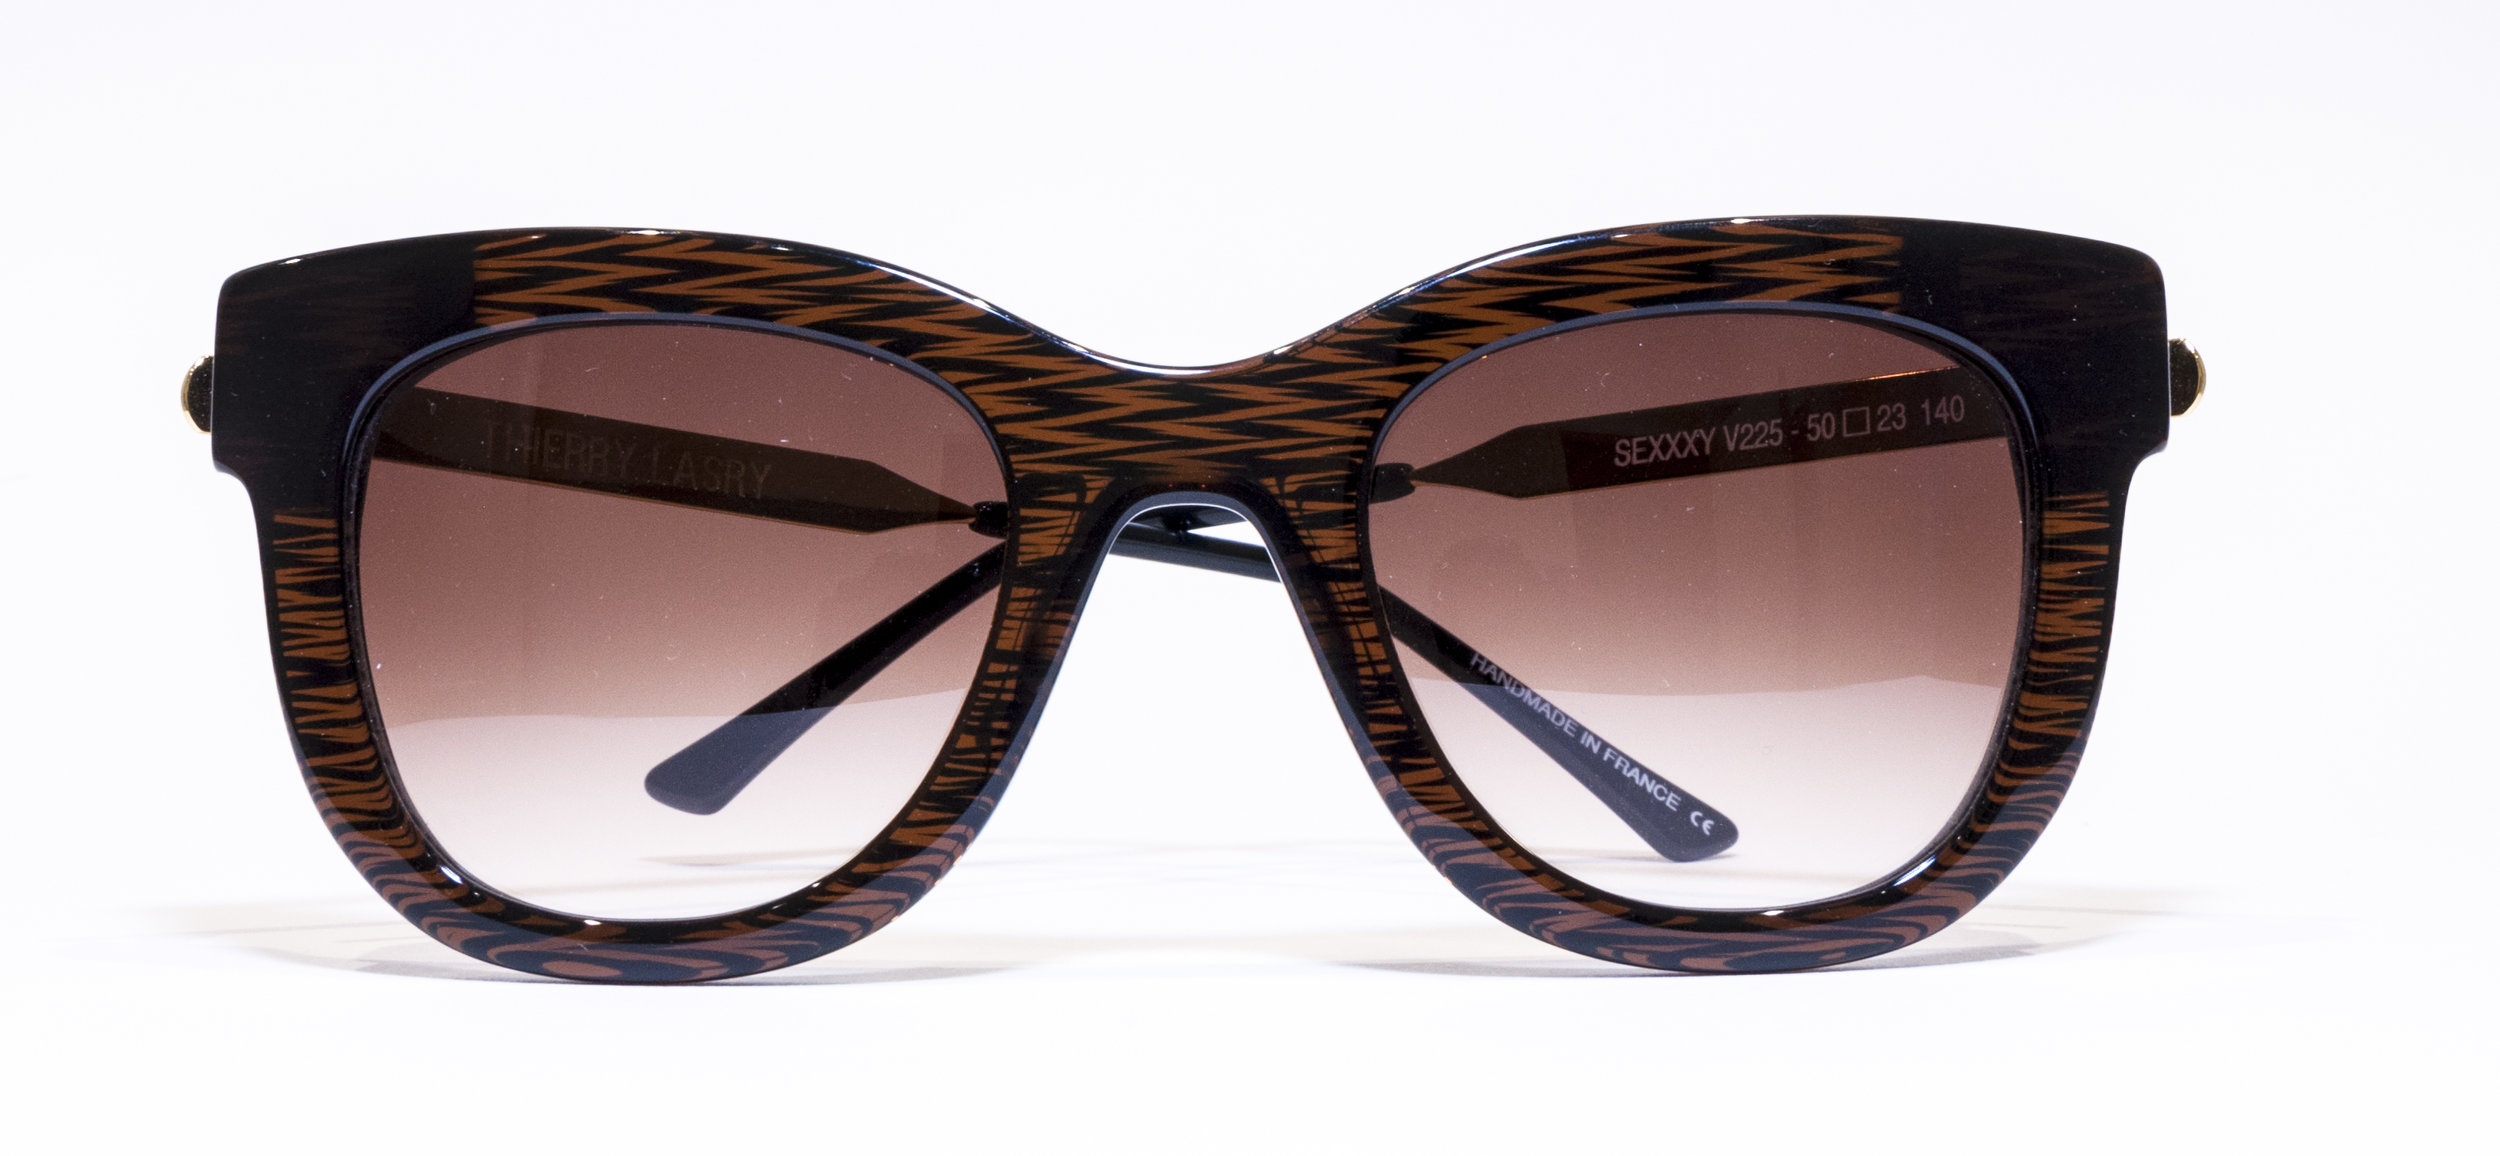 Thierry Lasry Sexxxy v225